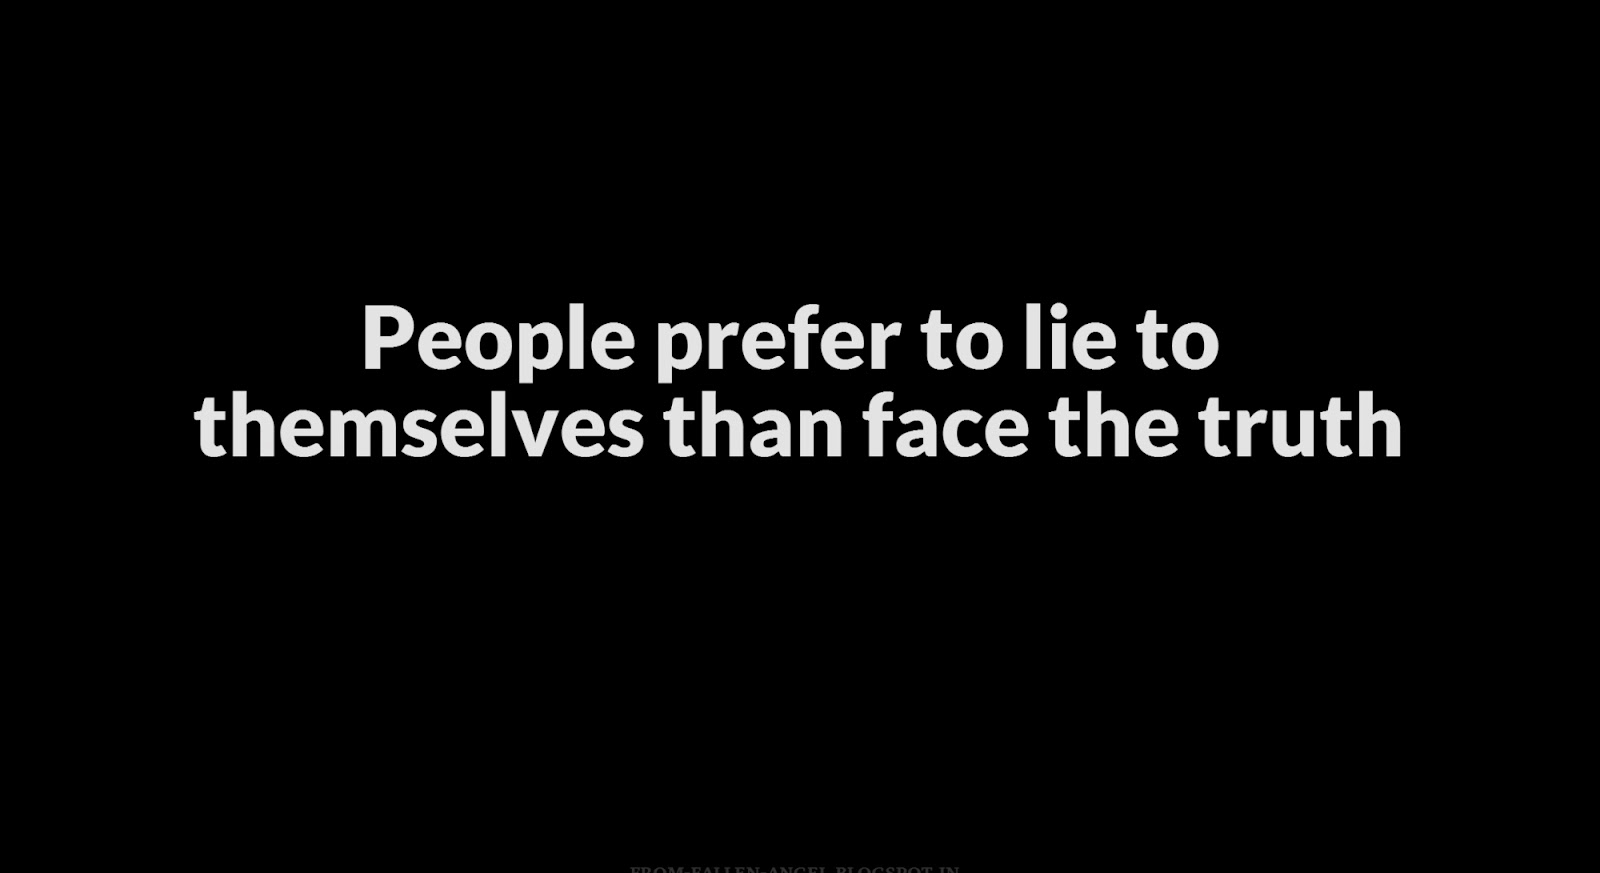 People prefer to lie to themselves than face the truth